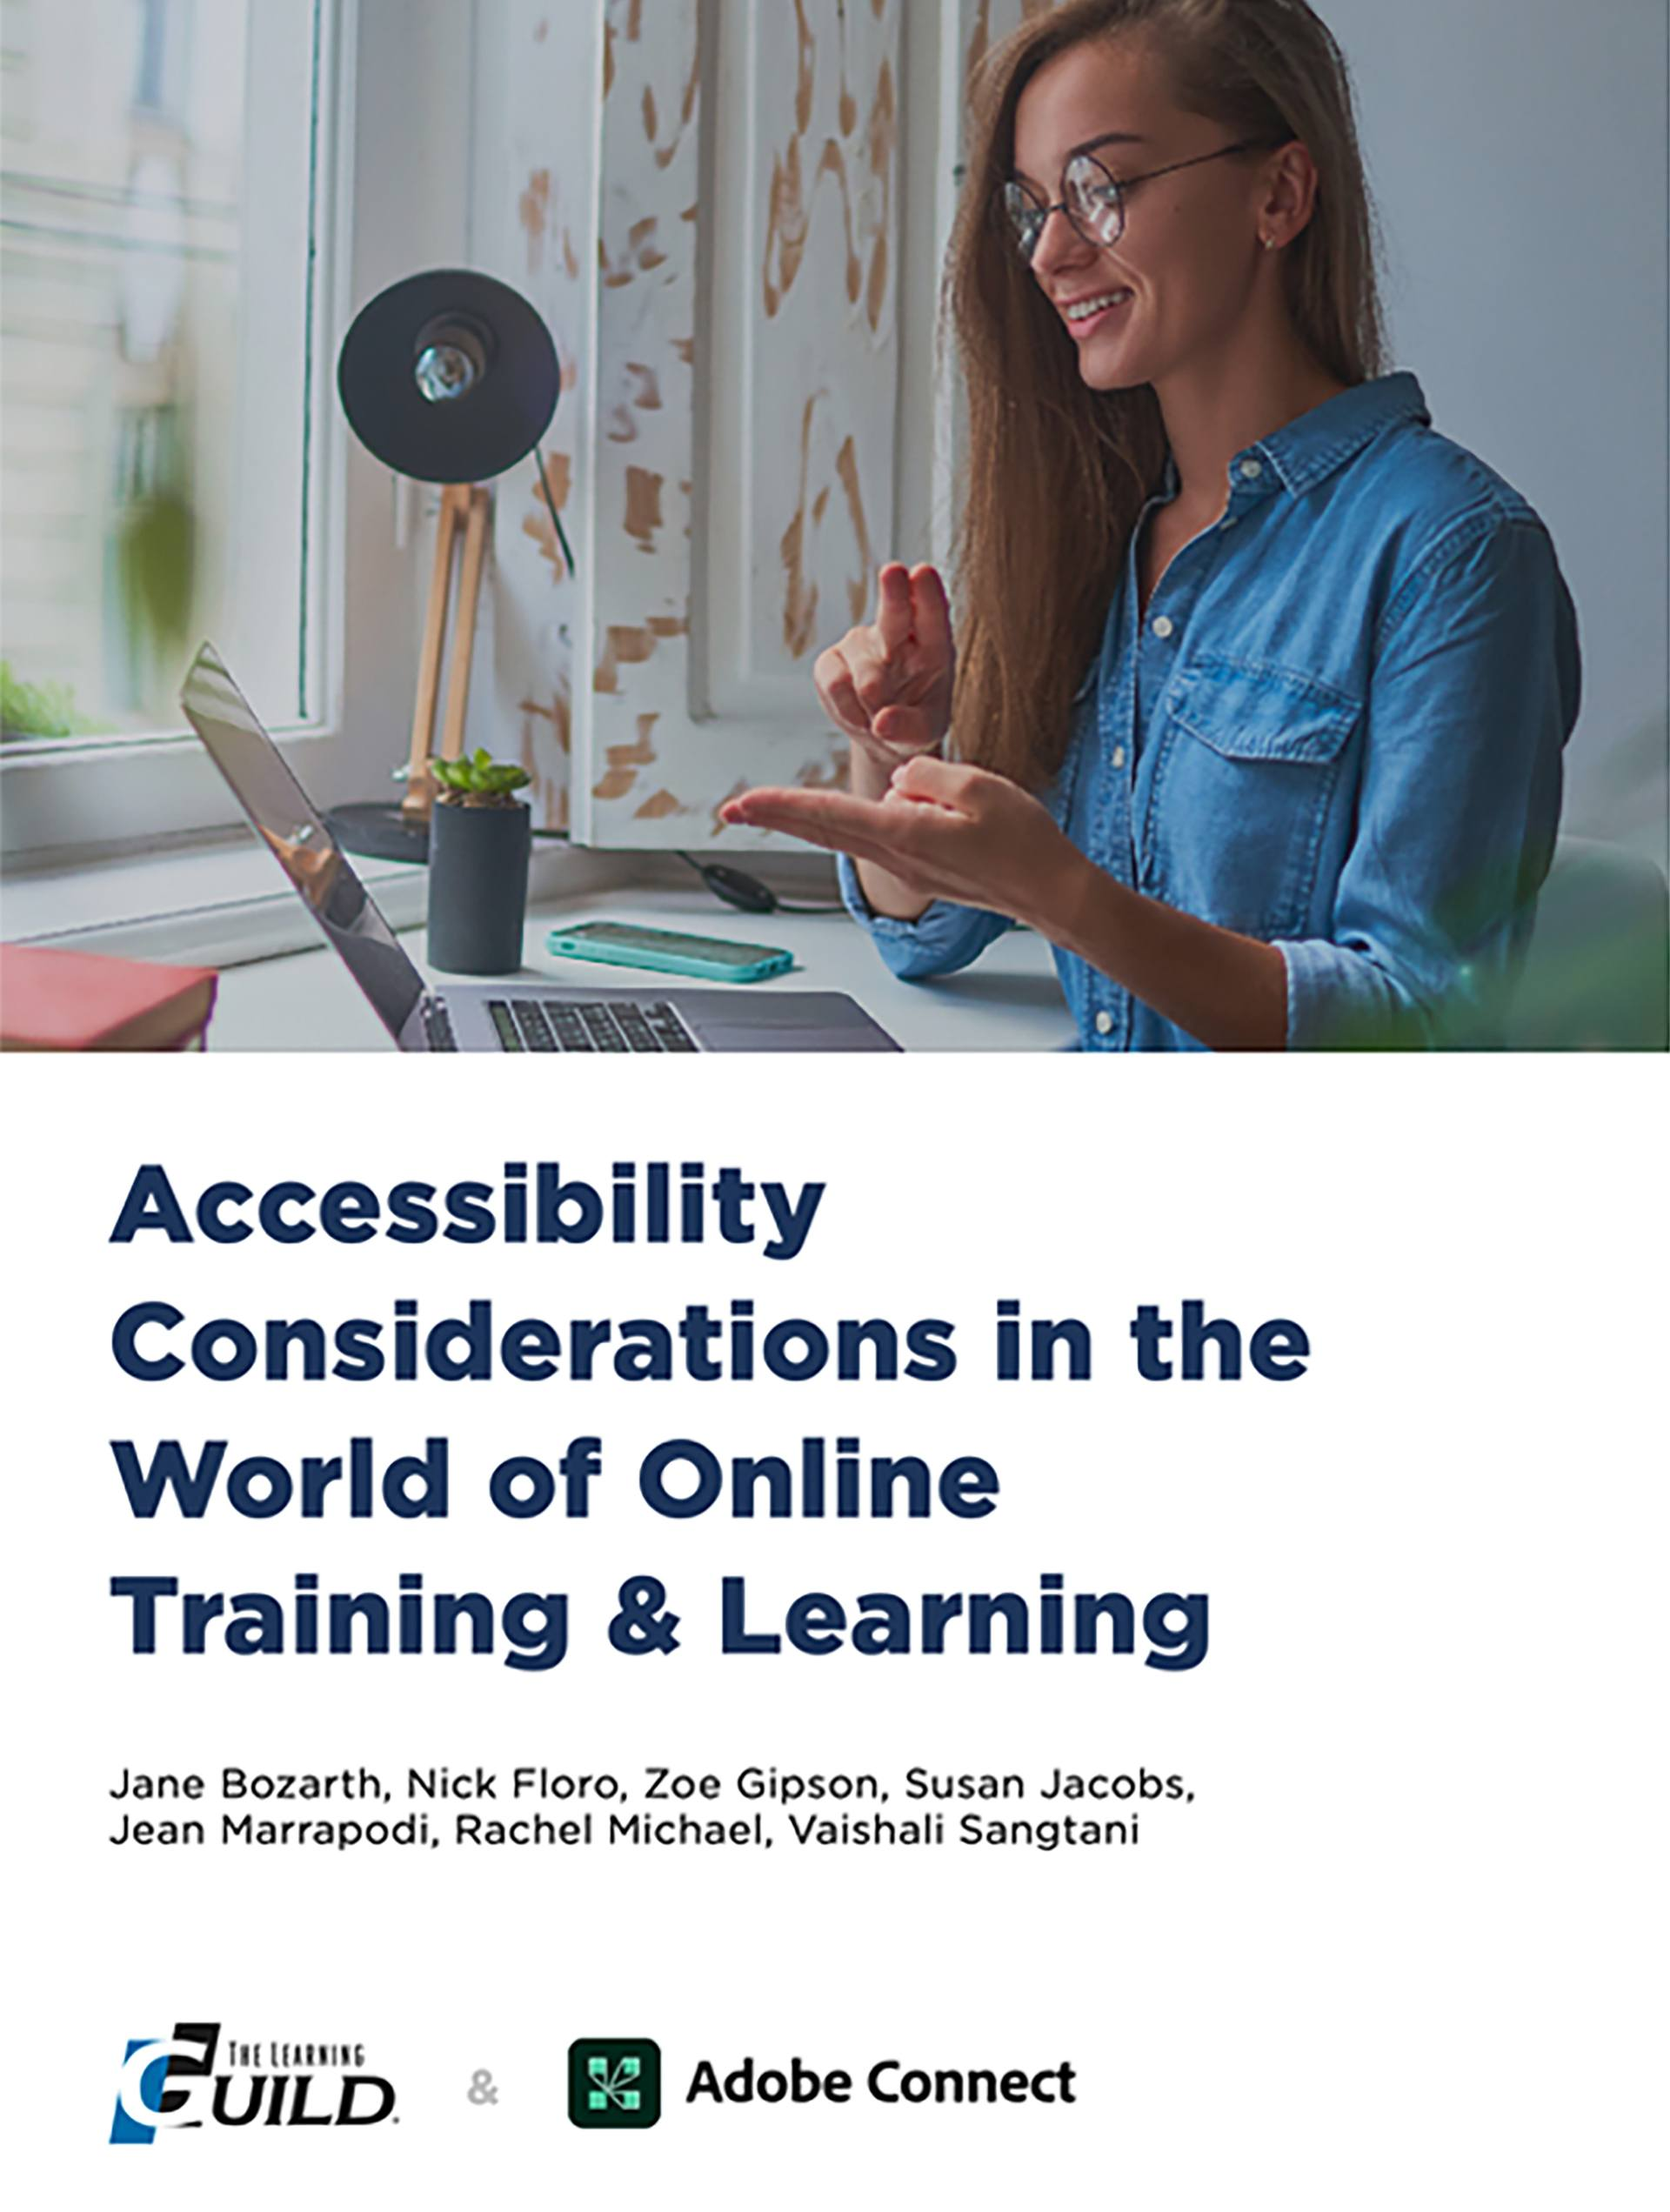 eBook Release: Accessibility Considerations In The World Of Online Training And Learning